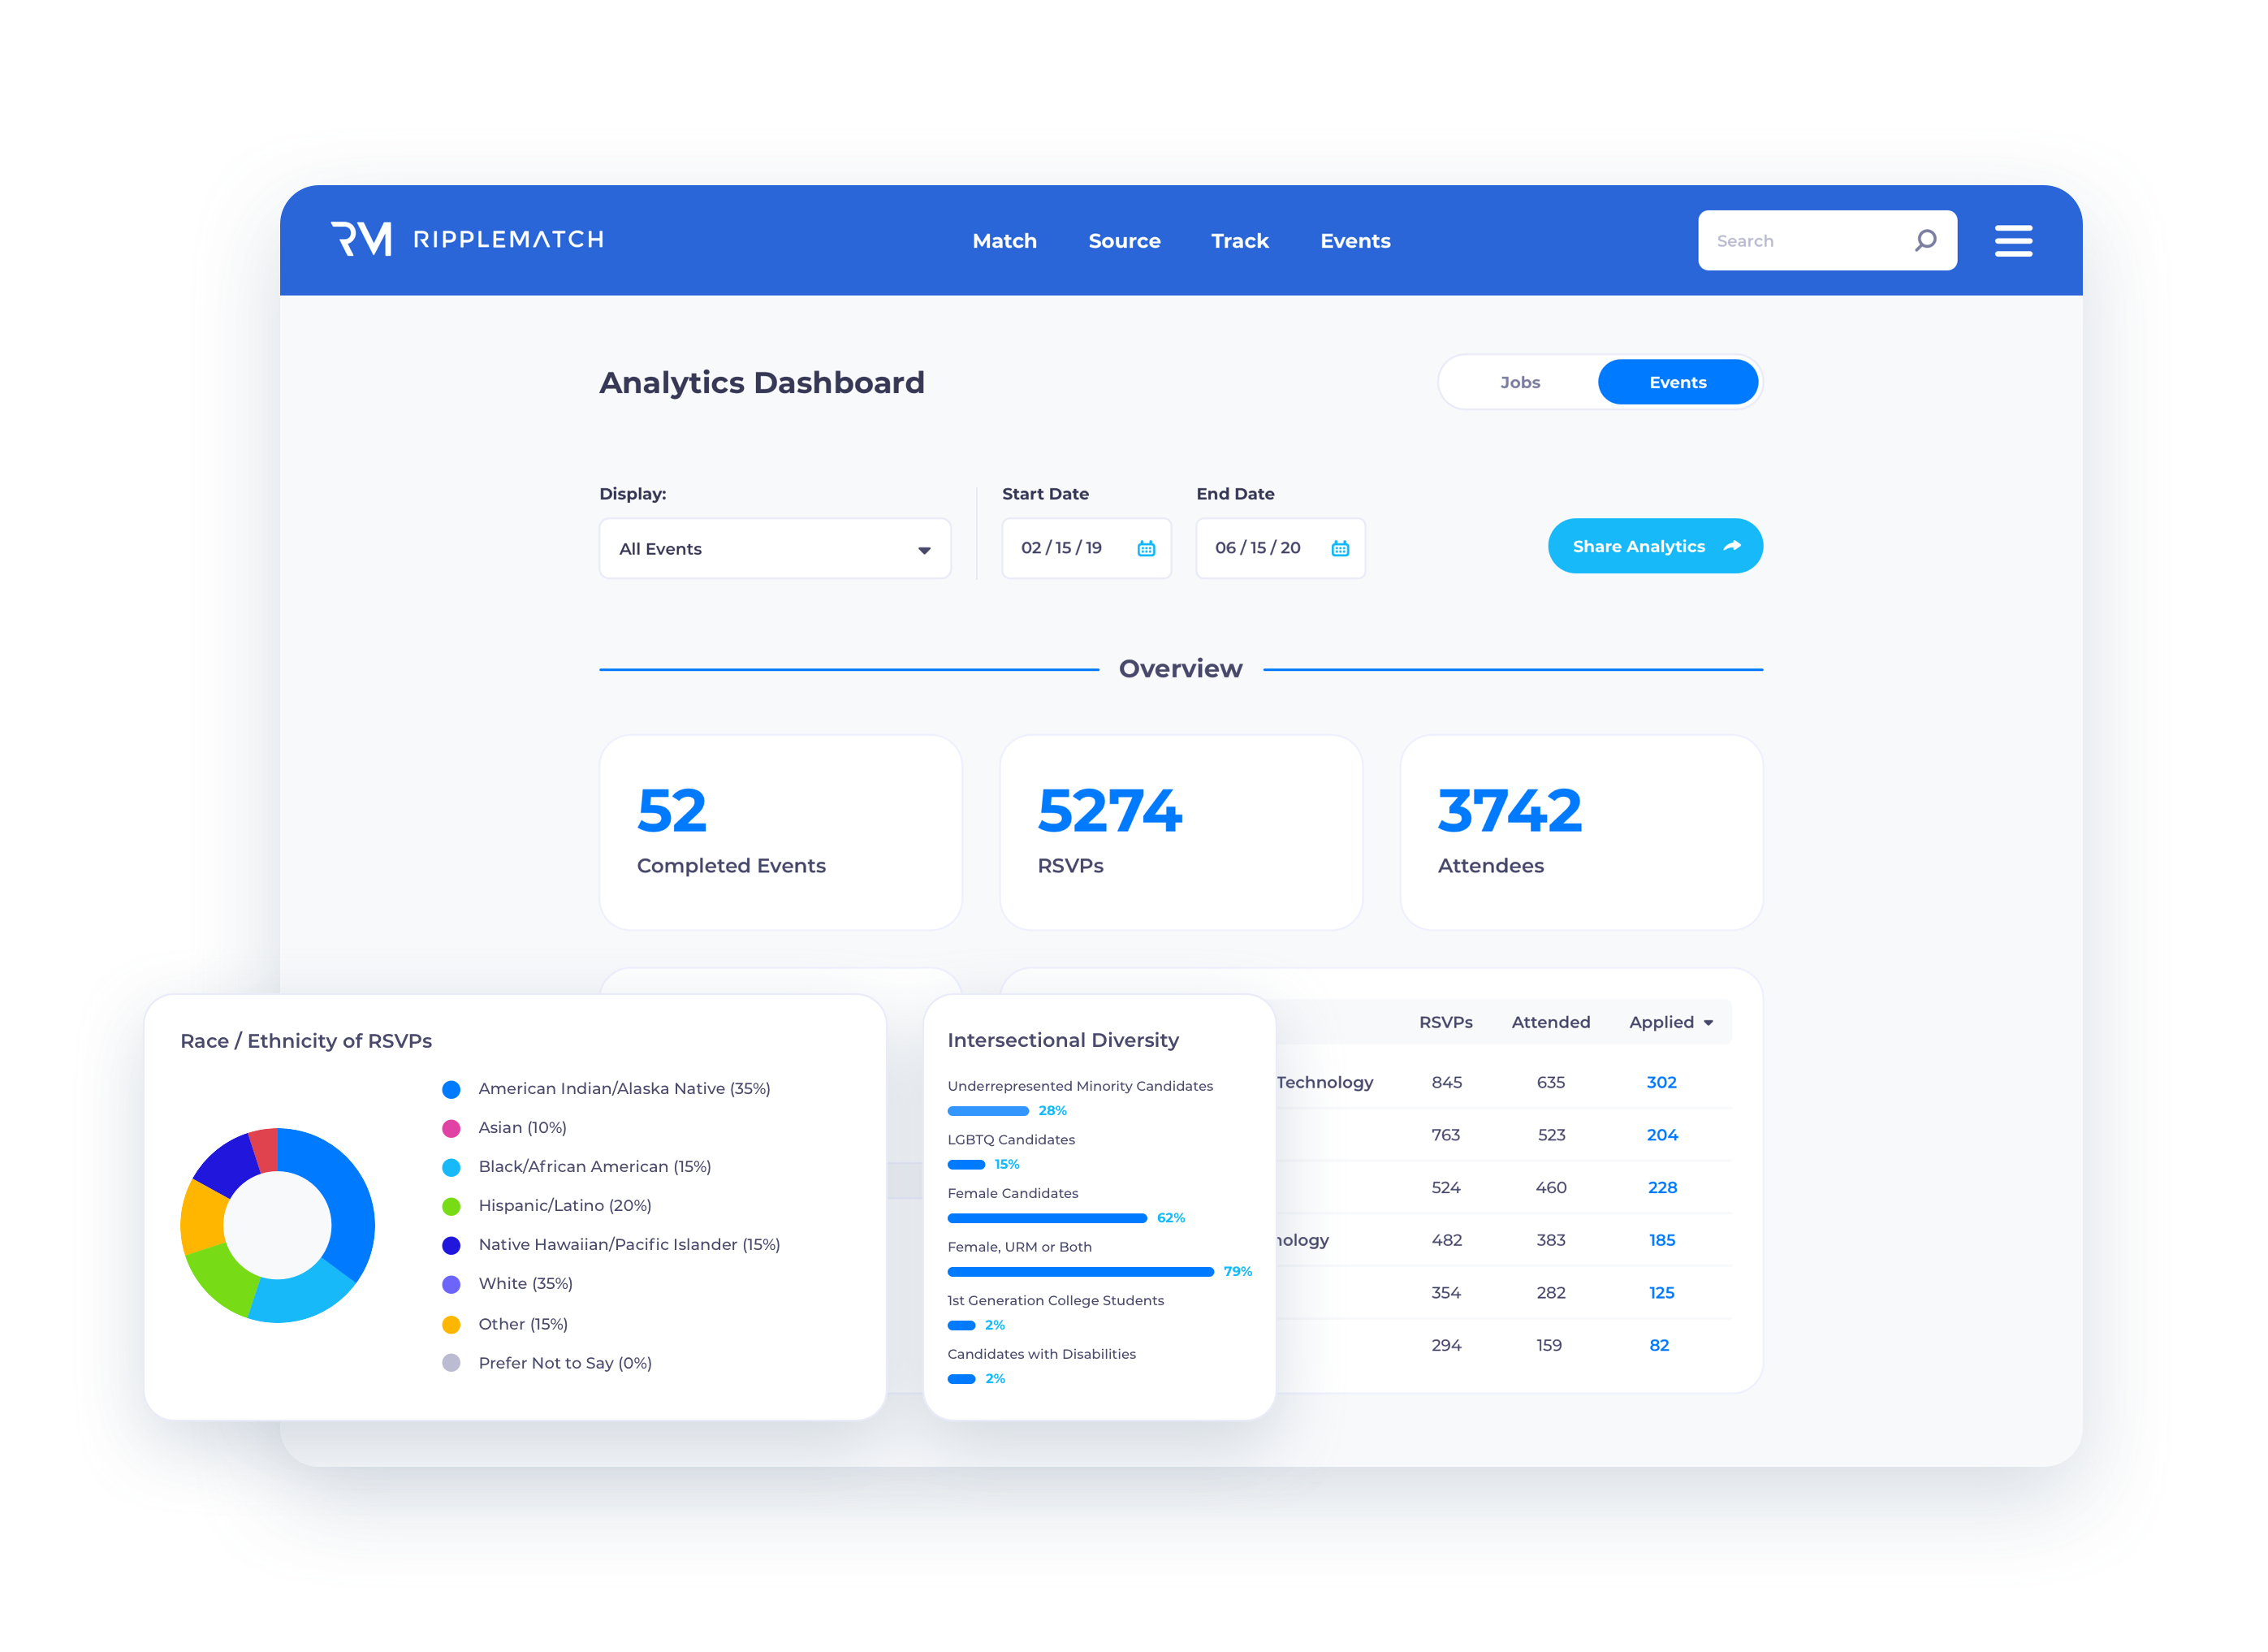 Analytics Dashboard